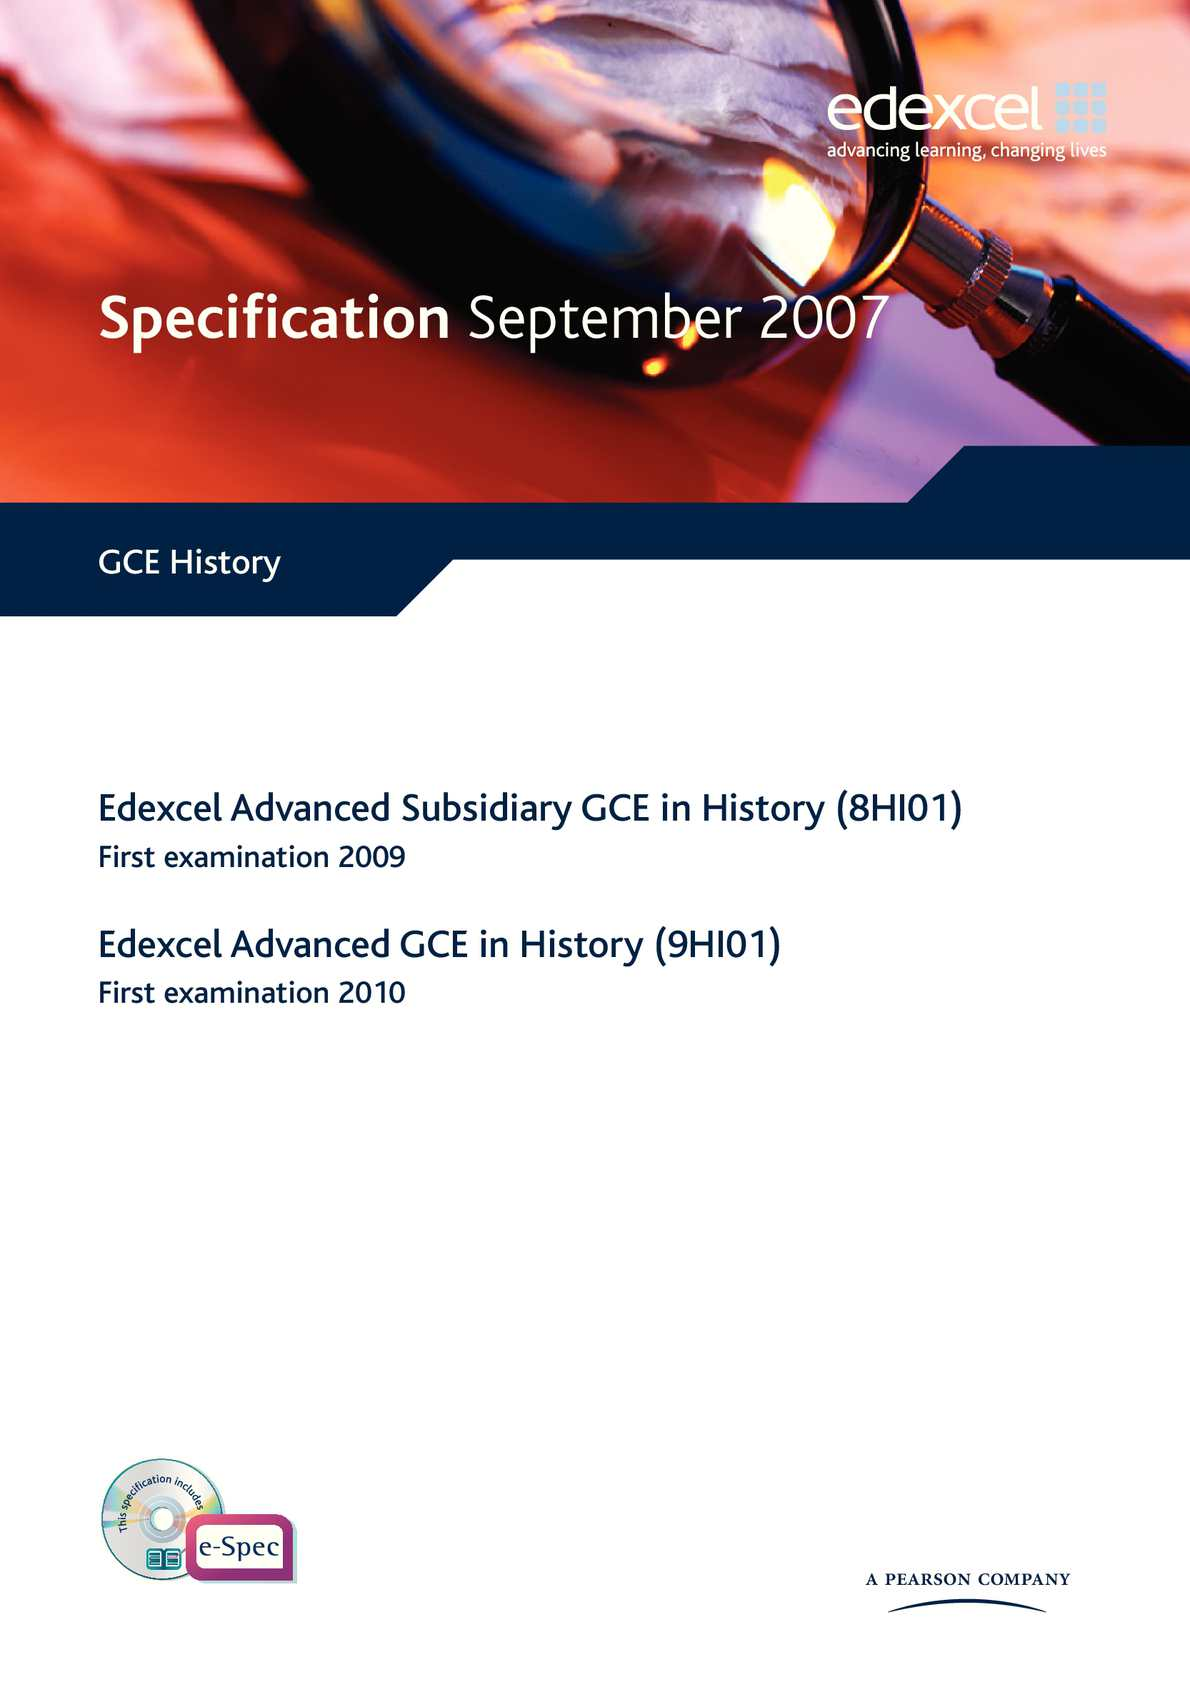 ocr history coursework guidance document